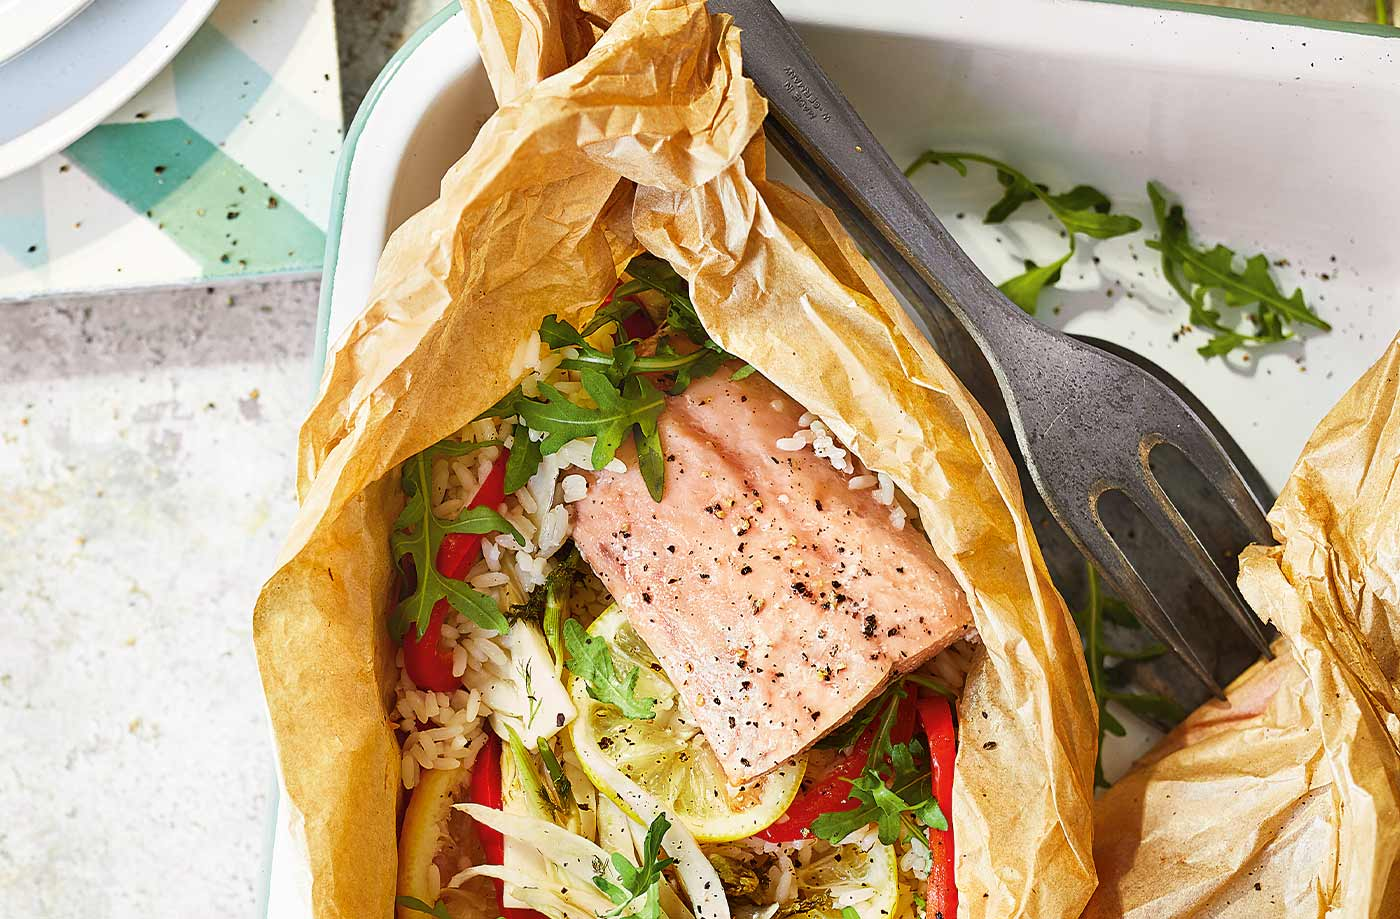 Salmon and rice parcels recipe